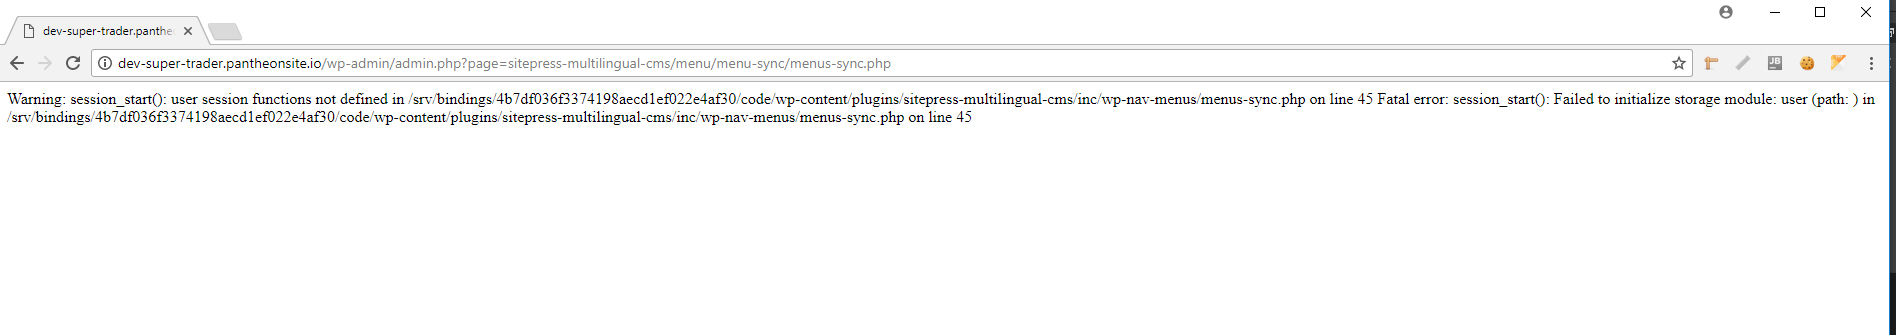 WP Menus Sync is not working  Its give me:Fatal error: session_start